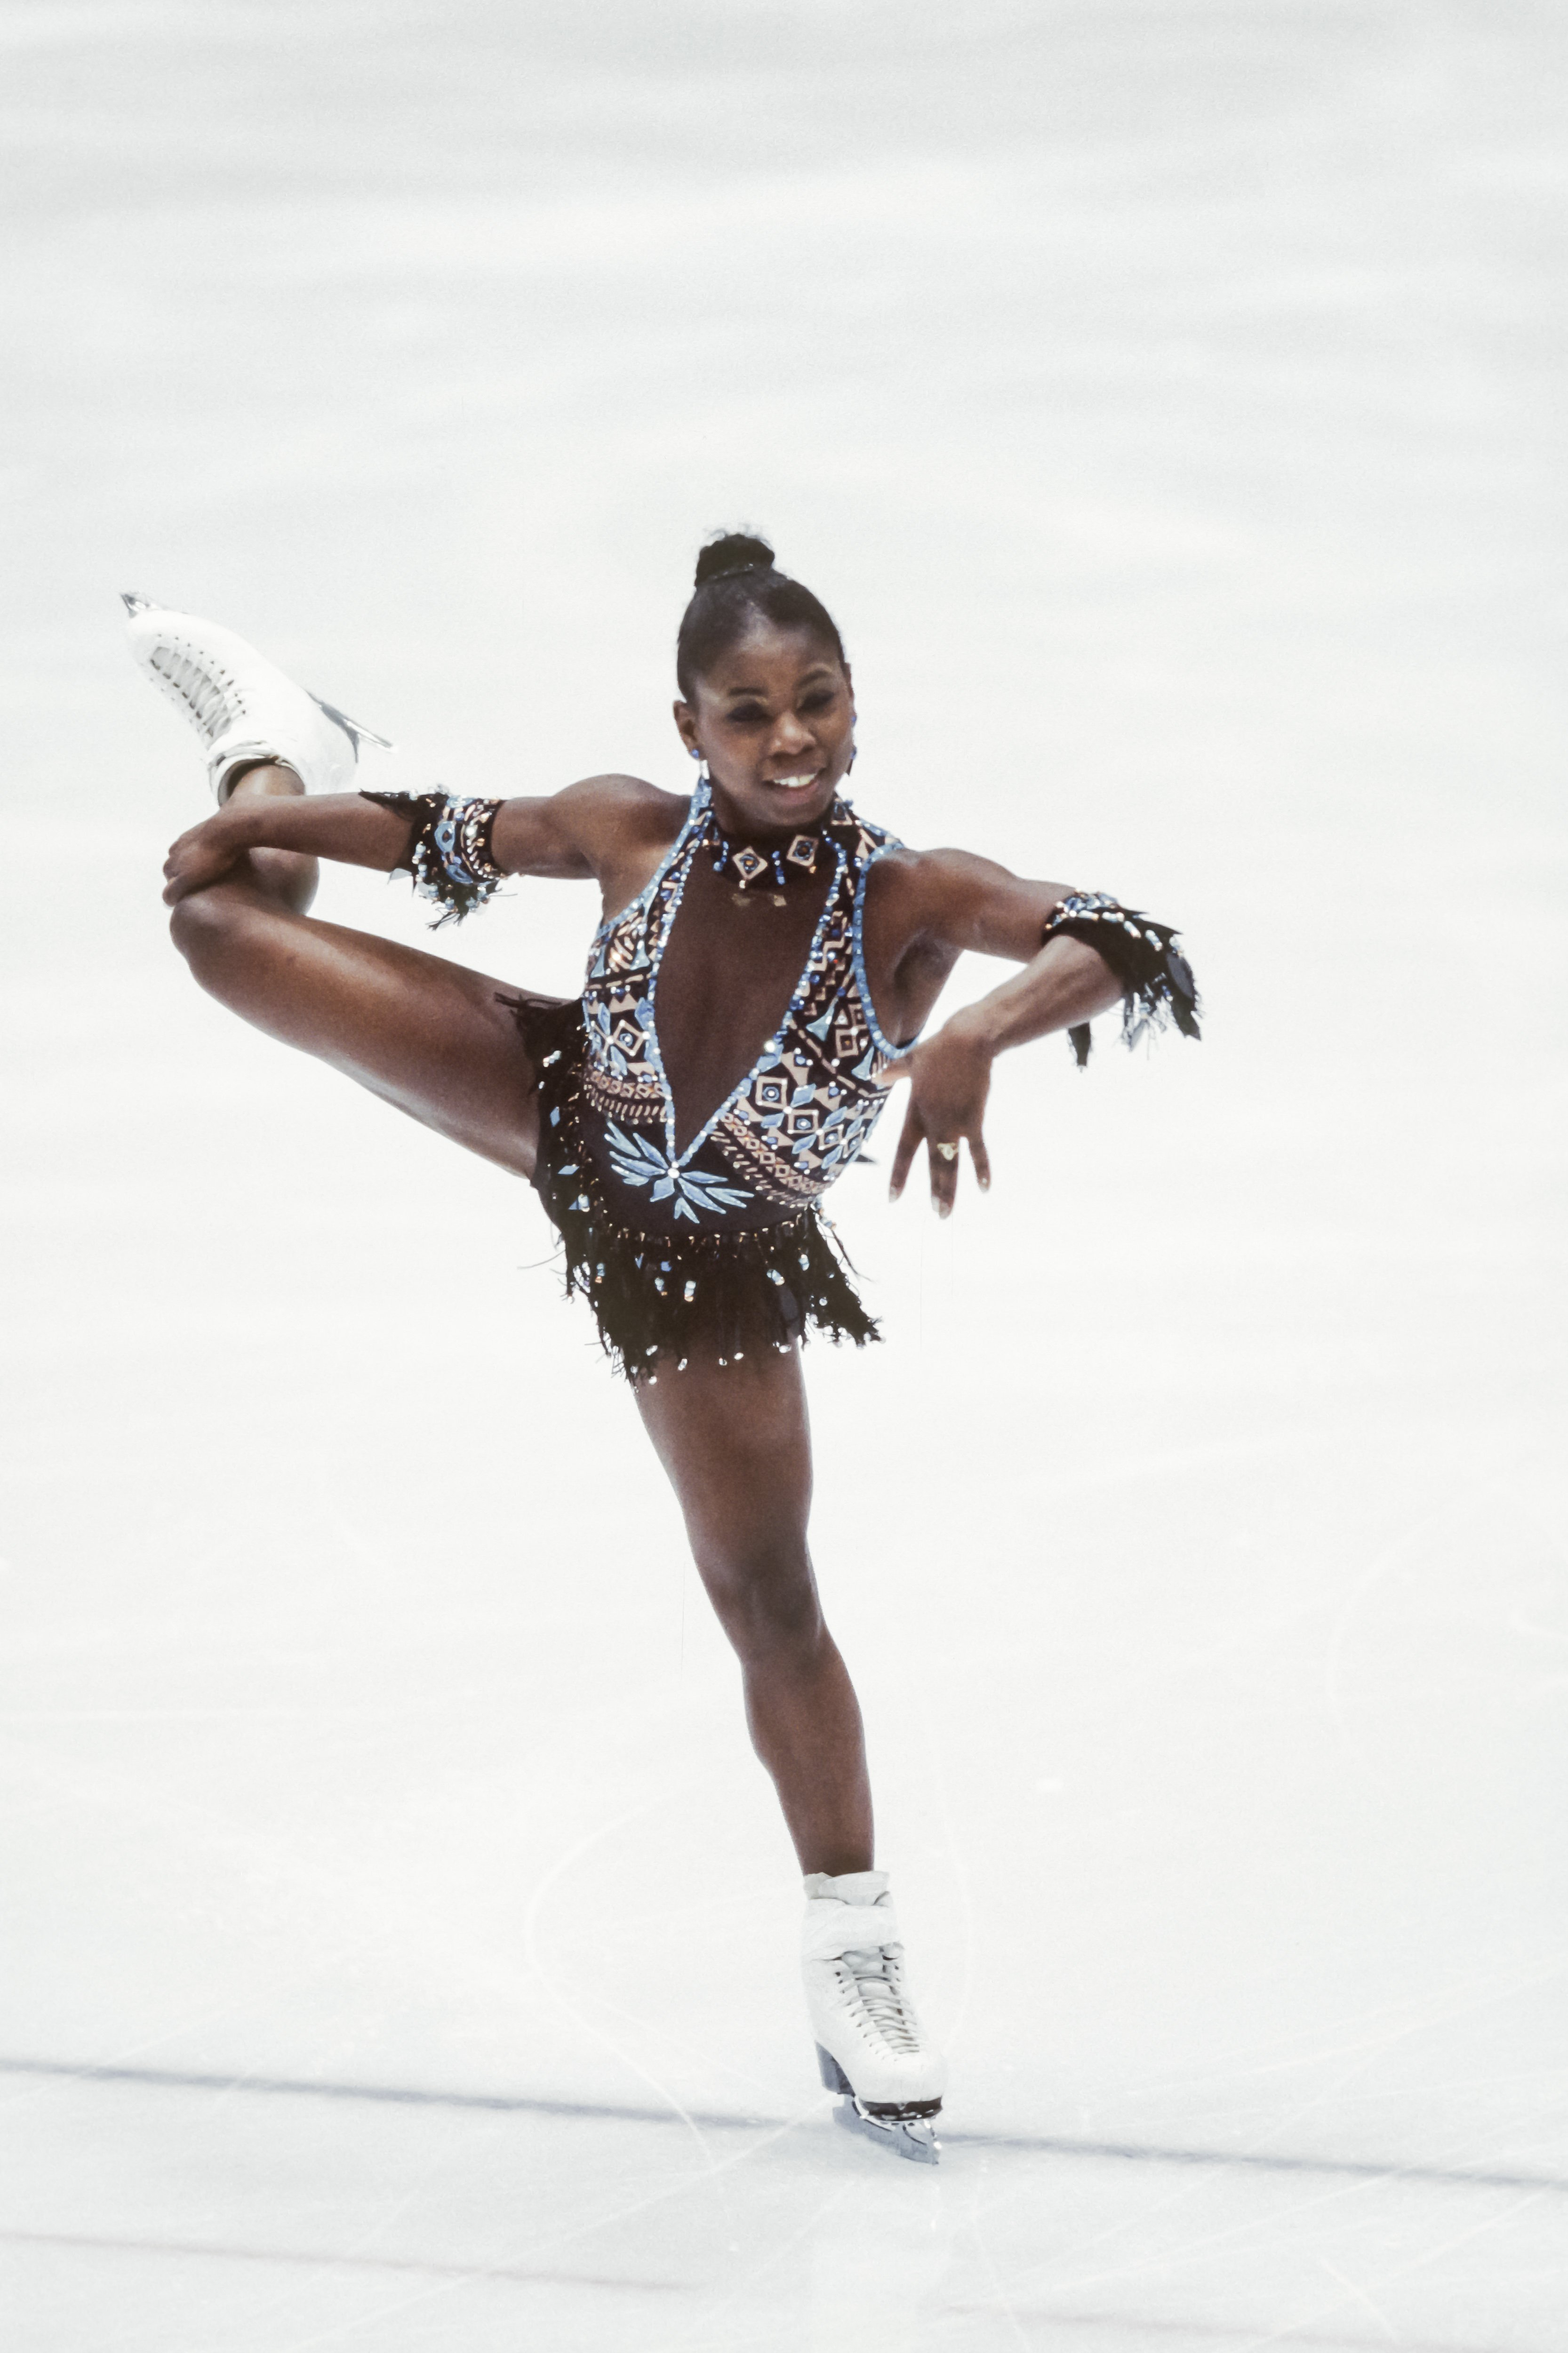 Surya Bonaly of France skates her short program of the Ladies Singles event of the figure skating competition of the 1998 Winter Olympics held on February 18, 1998 | Photo: Getty Images